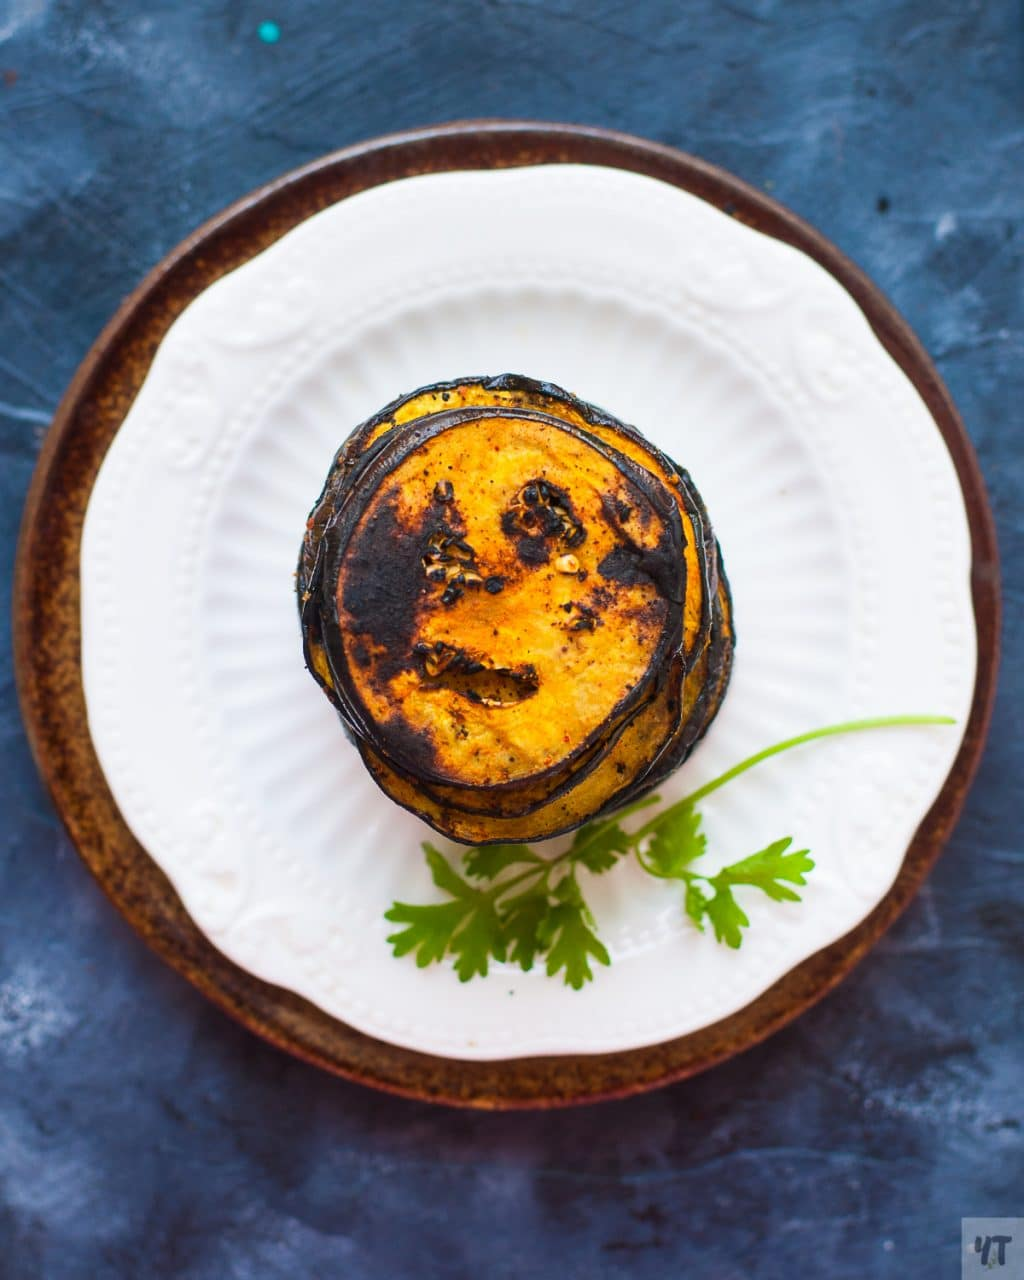 Healthy Baigan Bhaja - Smoky Eggplant Roasted in very little oil and charred over the fire for a smoky taste. Low Carb, Vegan & Paleo recipe. #eggplant #indian #paleo #whole30 #vegan #smoky #baigan #bhaja #roastedeggplant #vegetarian #lowcarb